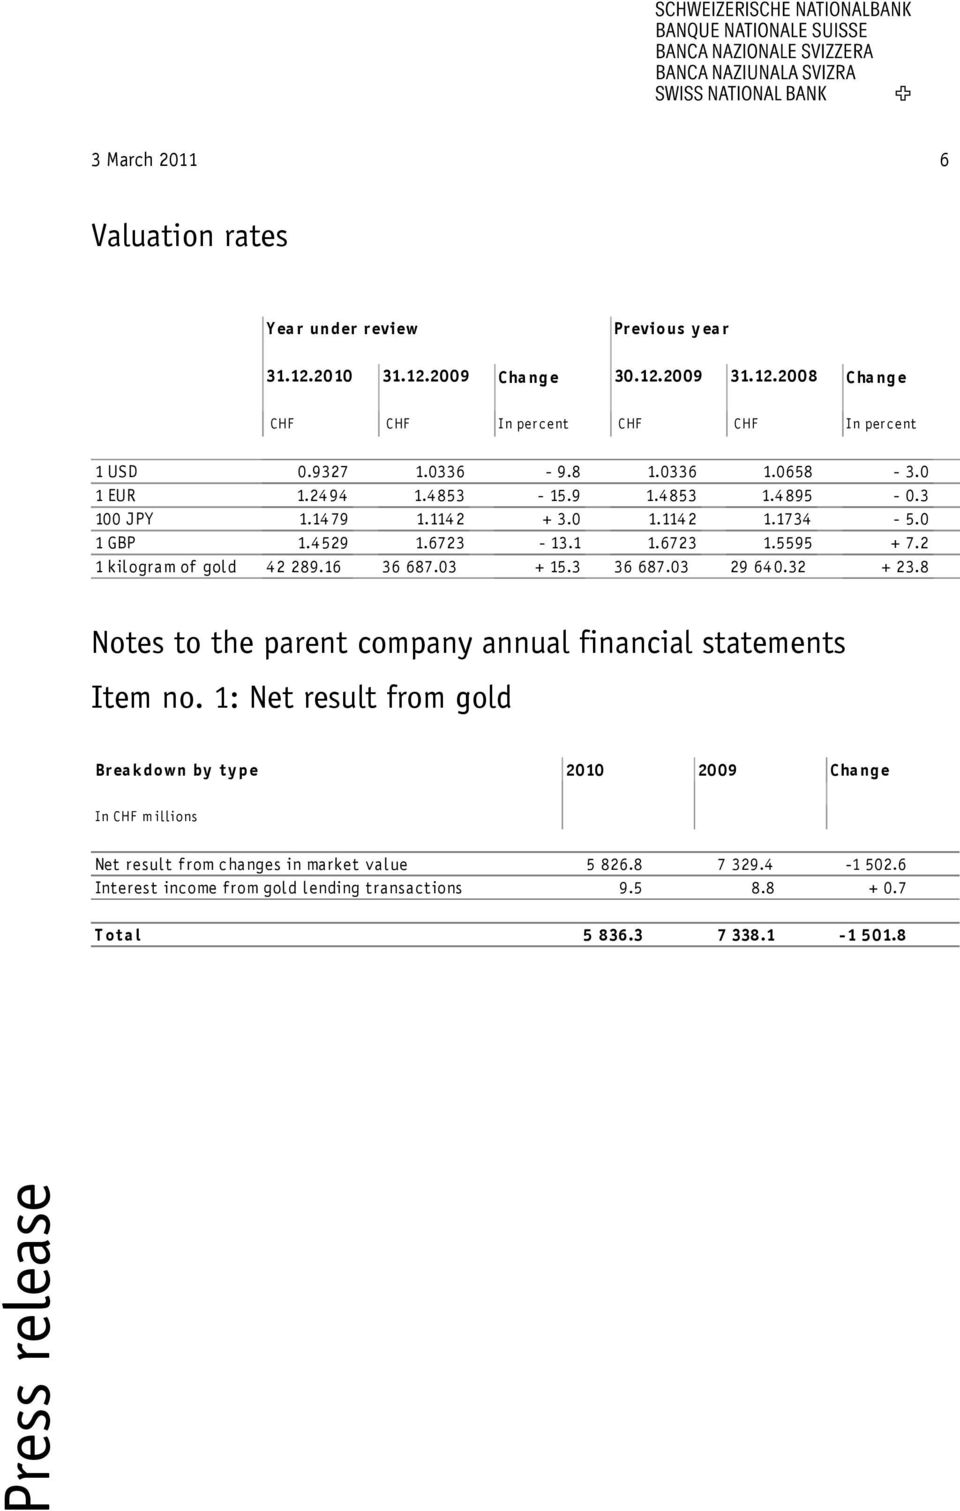 2 1 kilogram of gold 42 289.16 36 687.03 + 15.3 36 687.03 29 640.32 + 23.8 Notes to the parent company annual financial statements Item no.